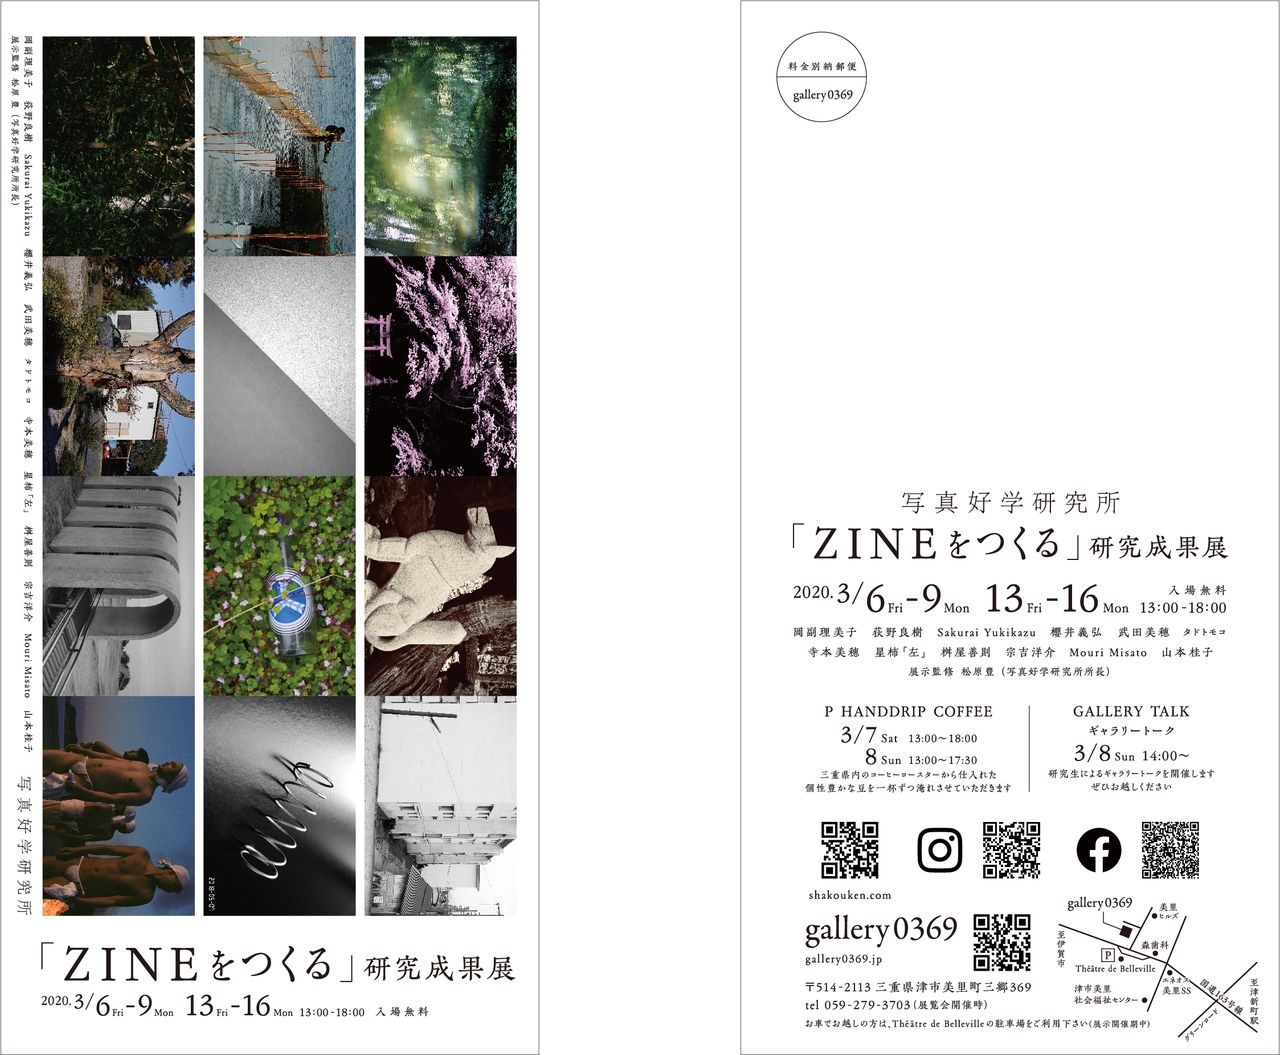 2020shakouken-zine-exhibition-dm